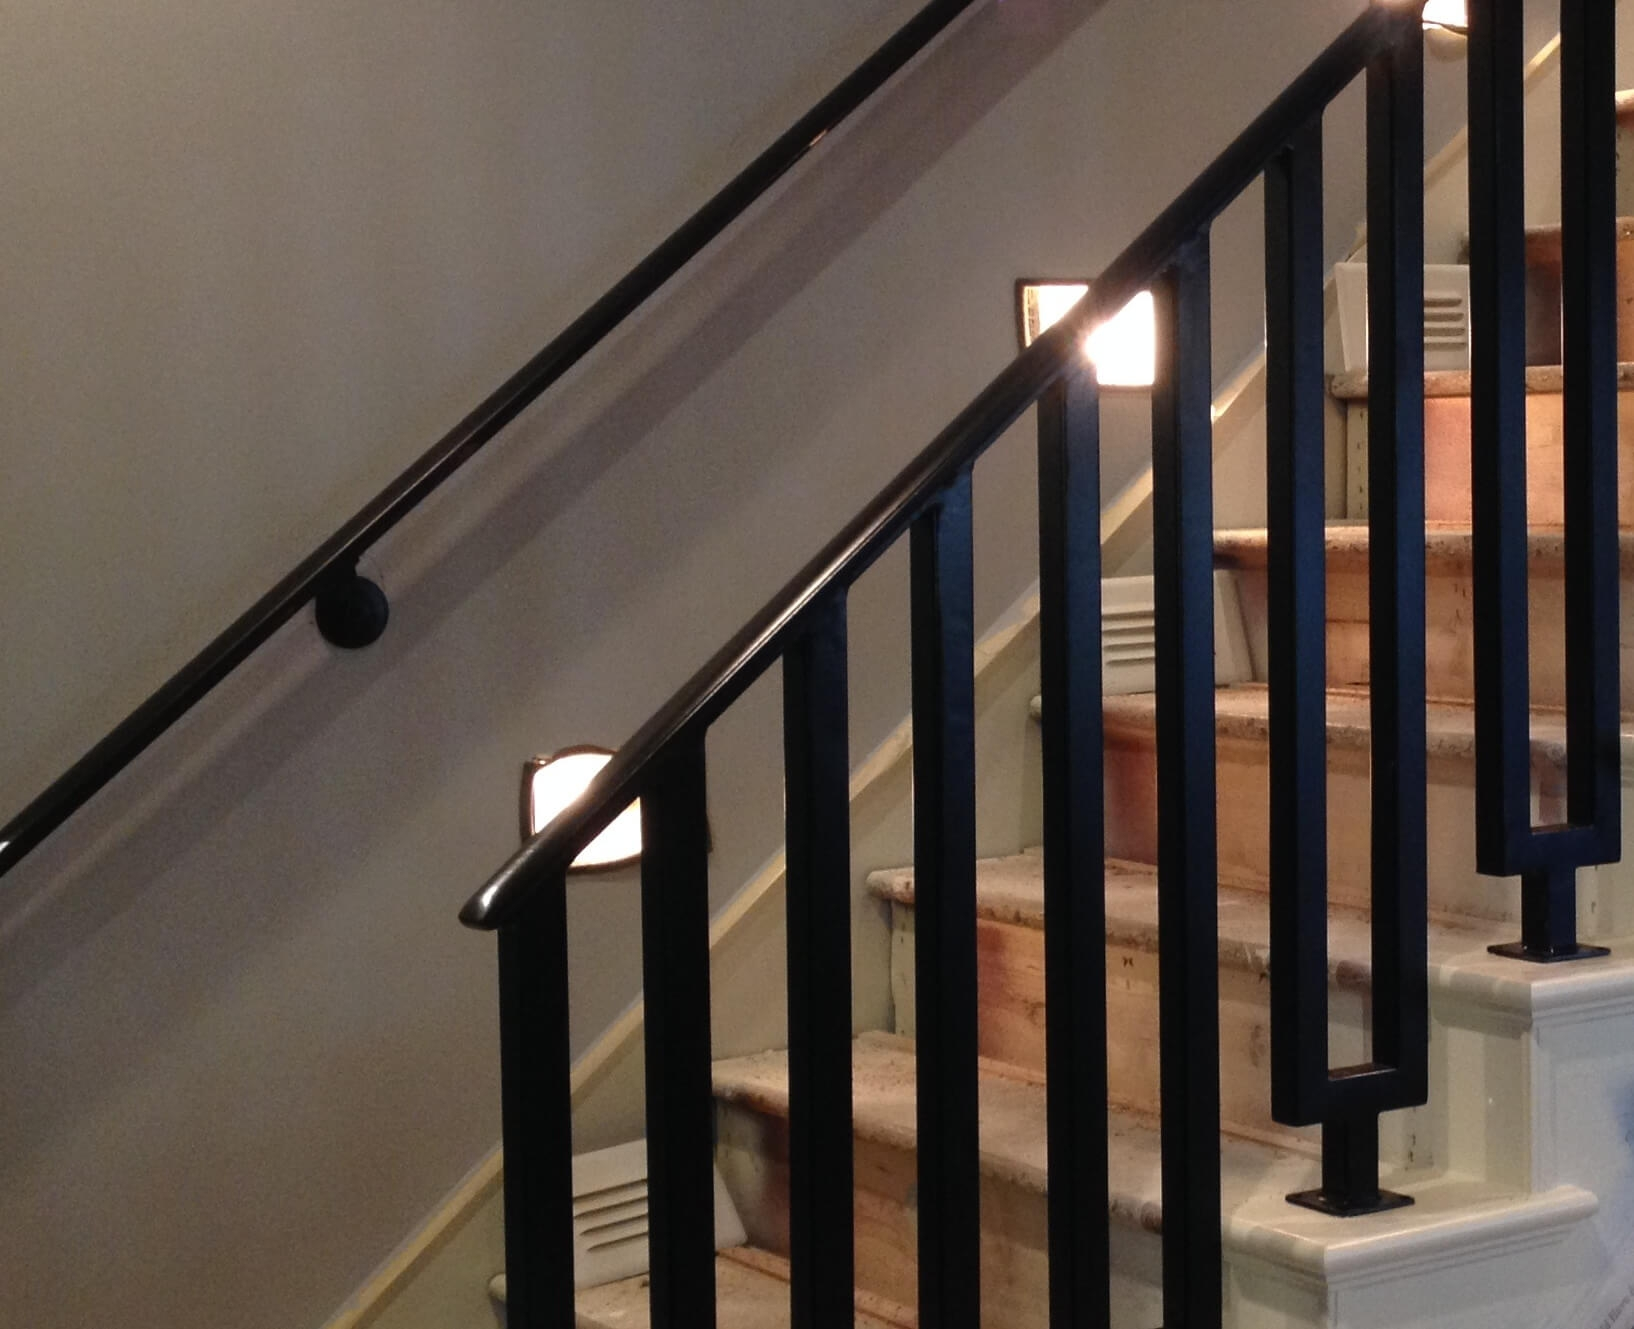 Iron Railings Fences Gates Custom Designed For Your Home | Iron Handrails For Stairs Interior | Wall Mounted | Balcony | Dark Brown | Room Divider | Custom